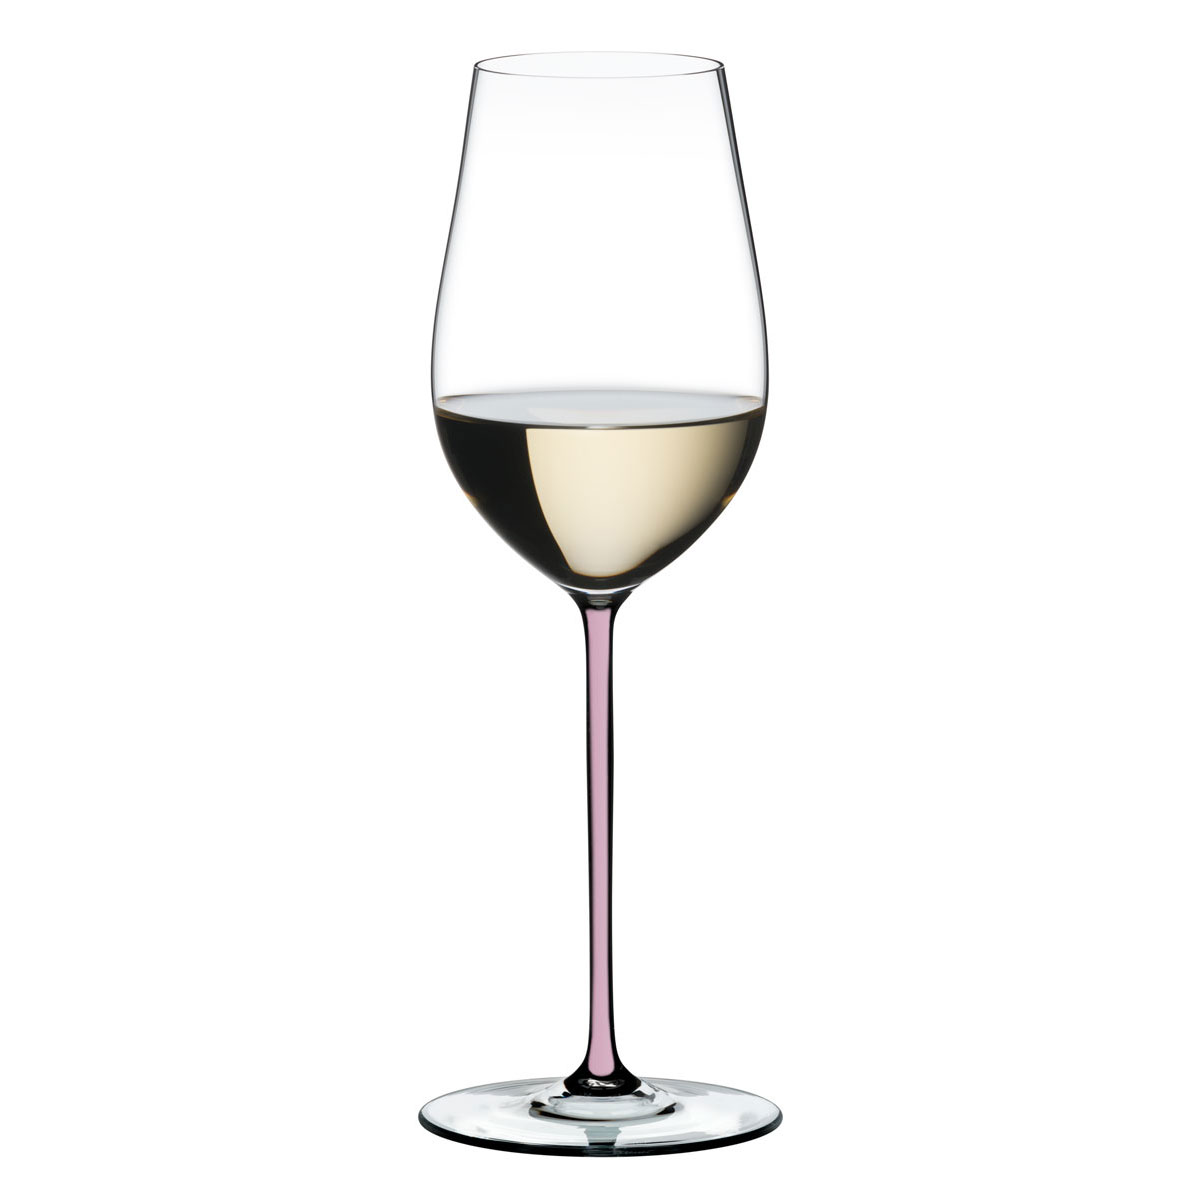 Riedel Fatto A Mano Riesling, Zinfandel Crystal Wine Glass, Pink